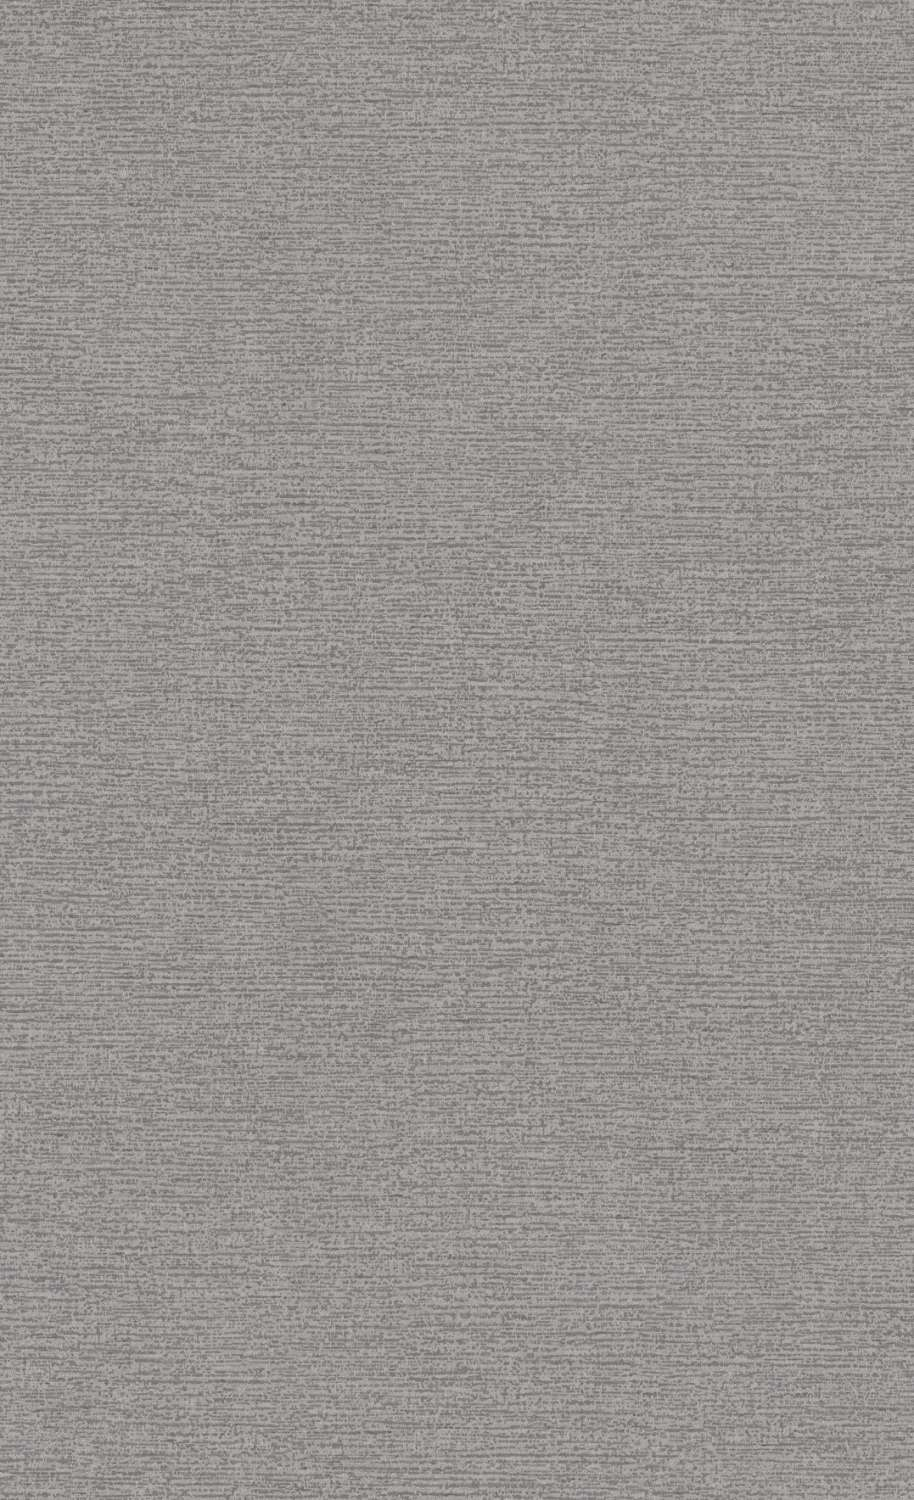 Grey Metallic Wallpaper C7138 | Commercial, Hospitality & Hotel Lobby